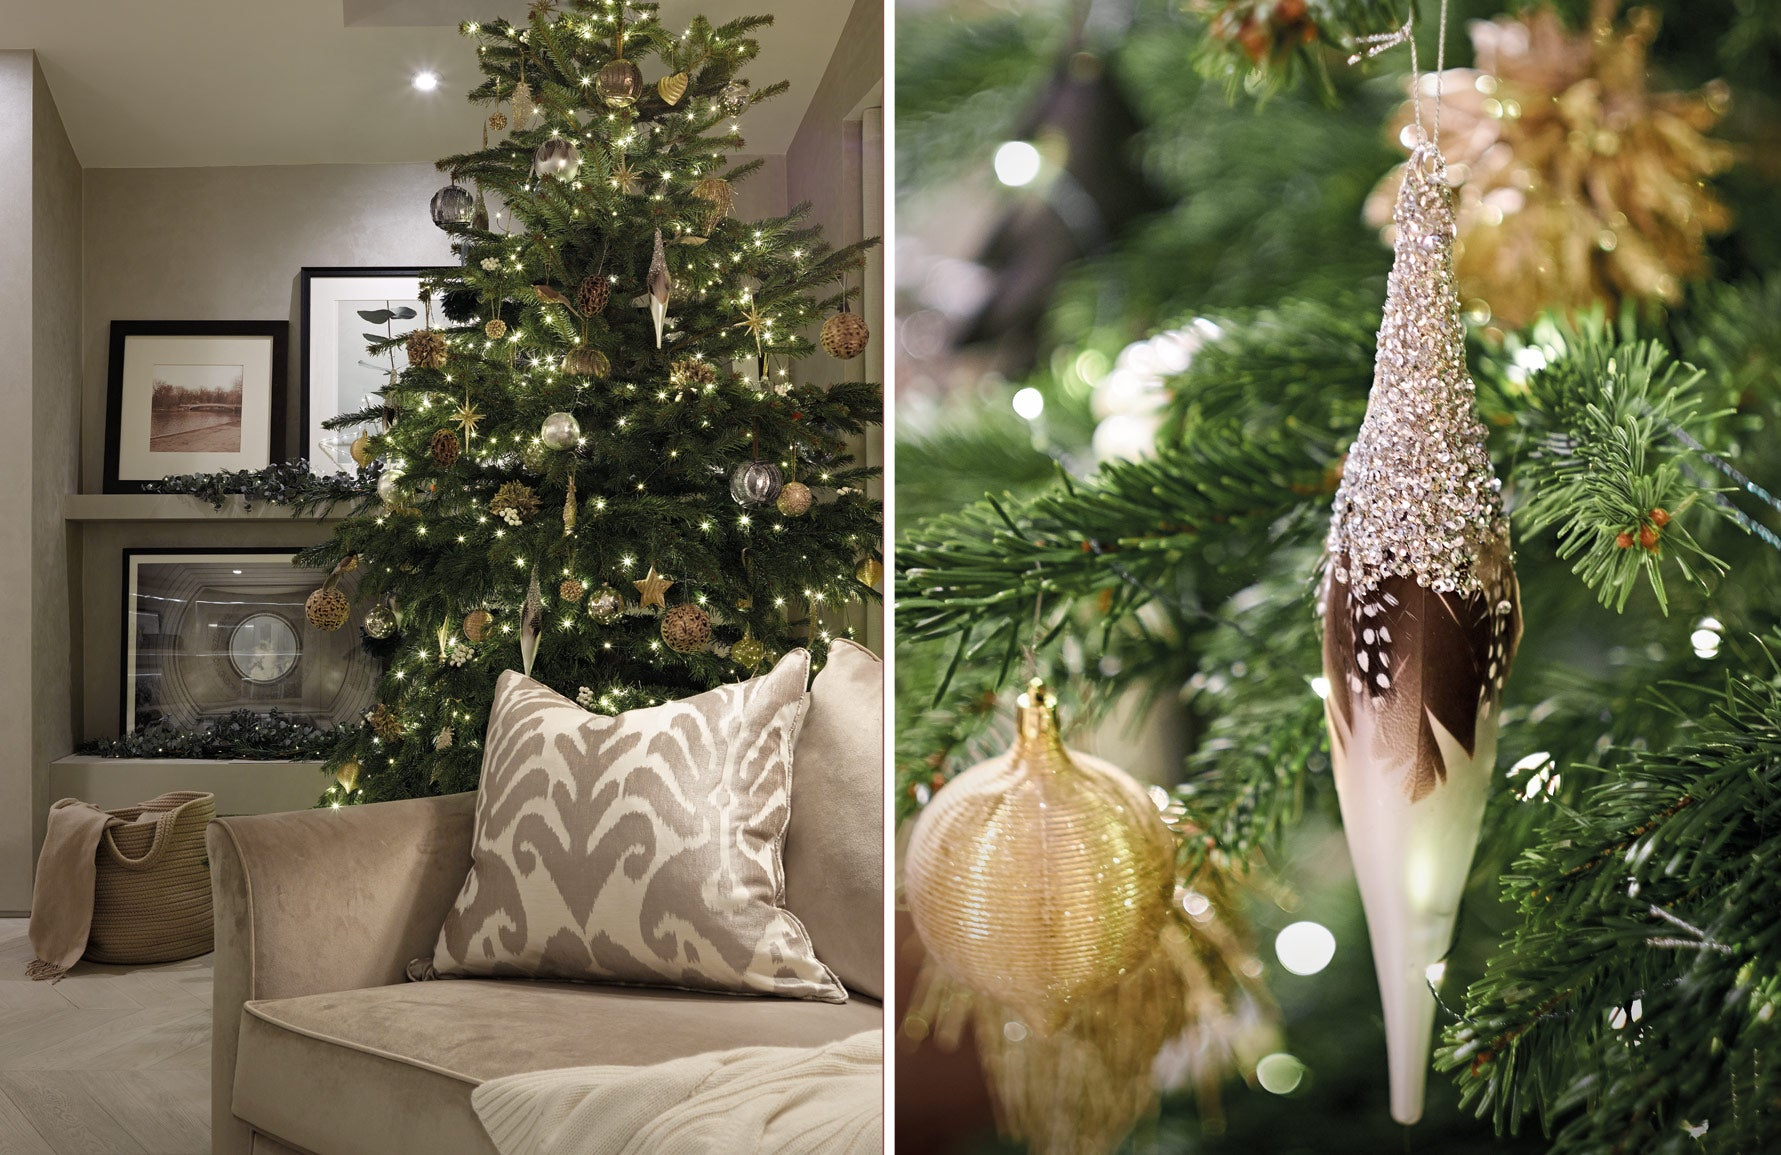 Christmas Decorating Ideas | Neutral Christmas Decor | Interior by Laura Hammett | Shop now at LuxDeco.com